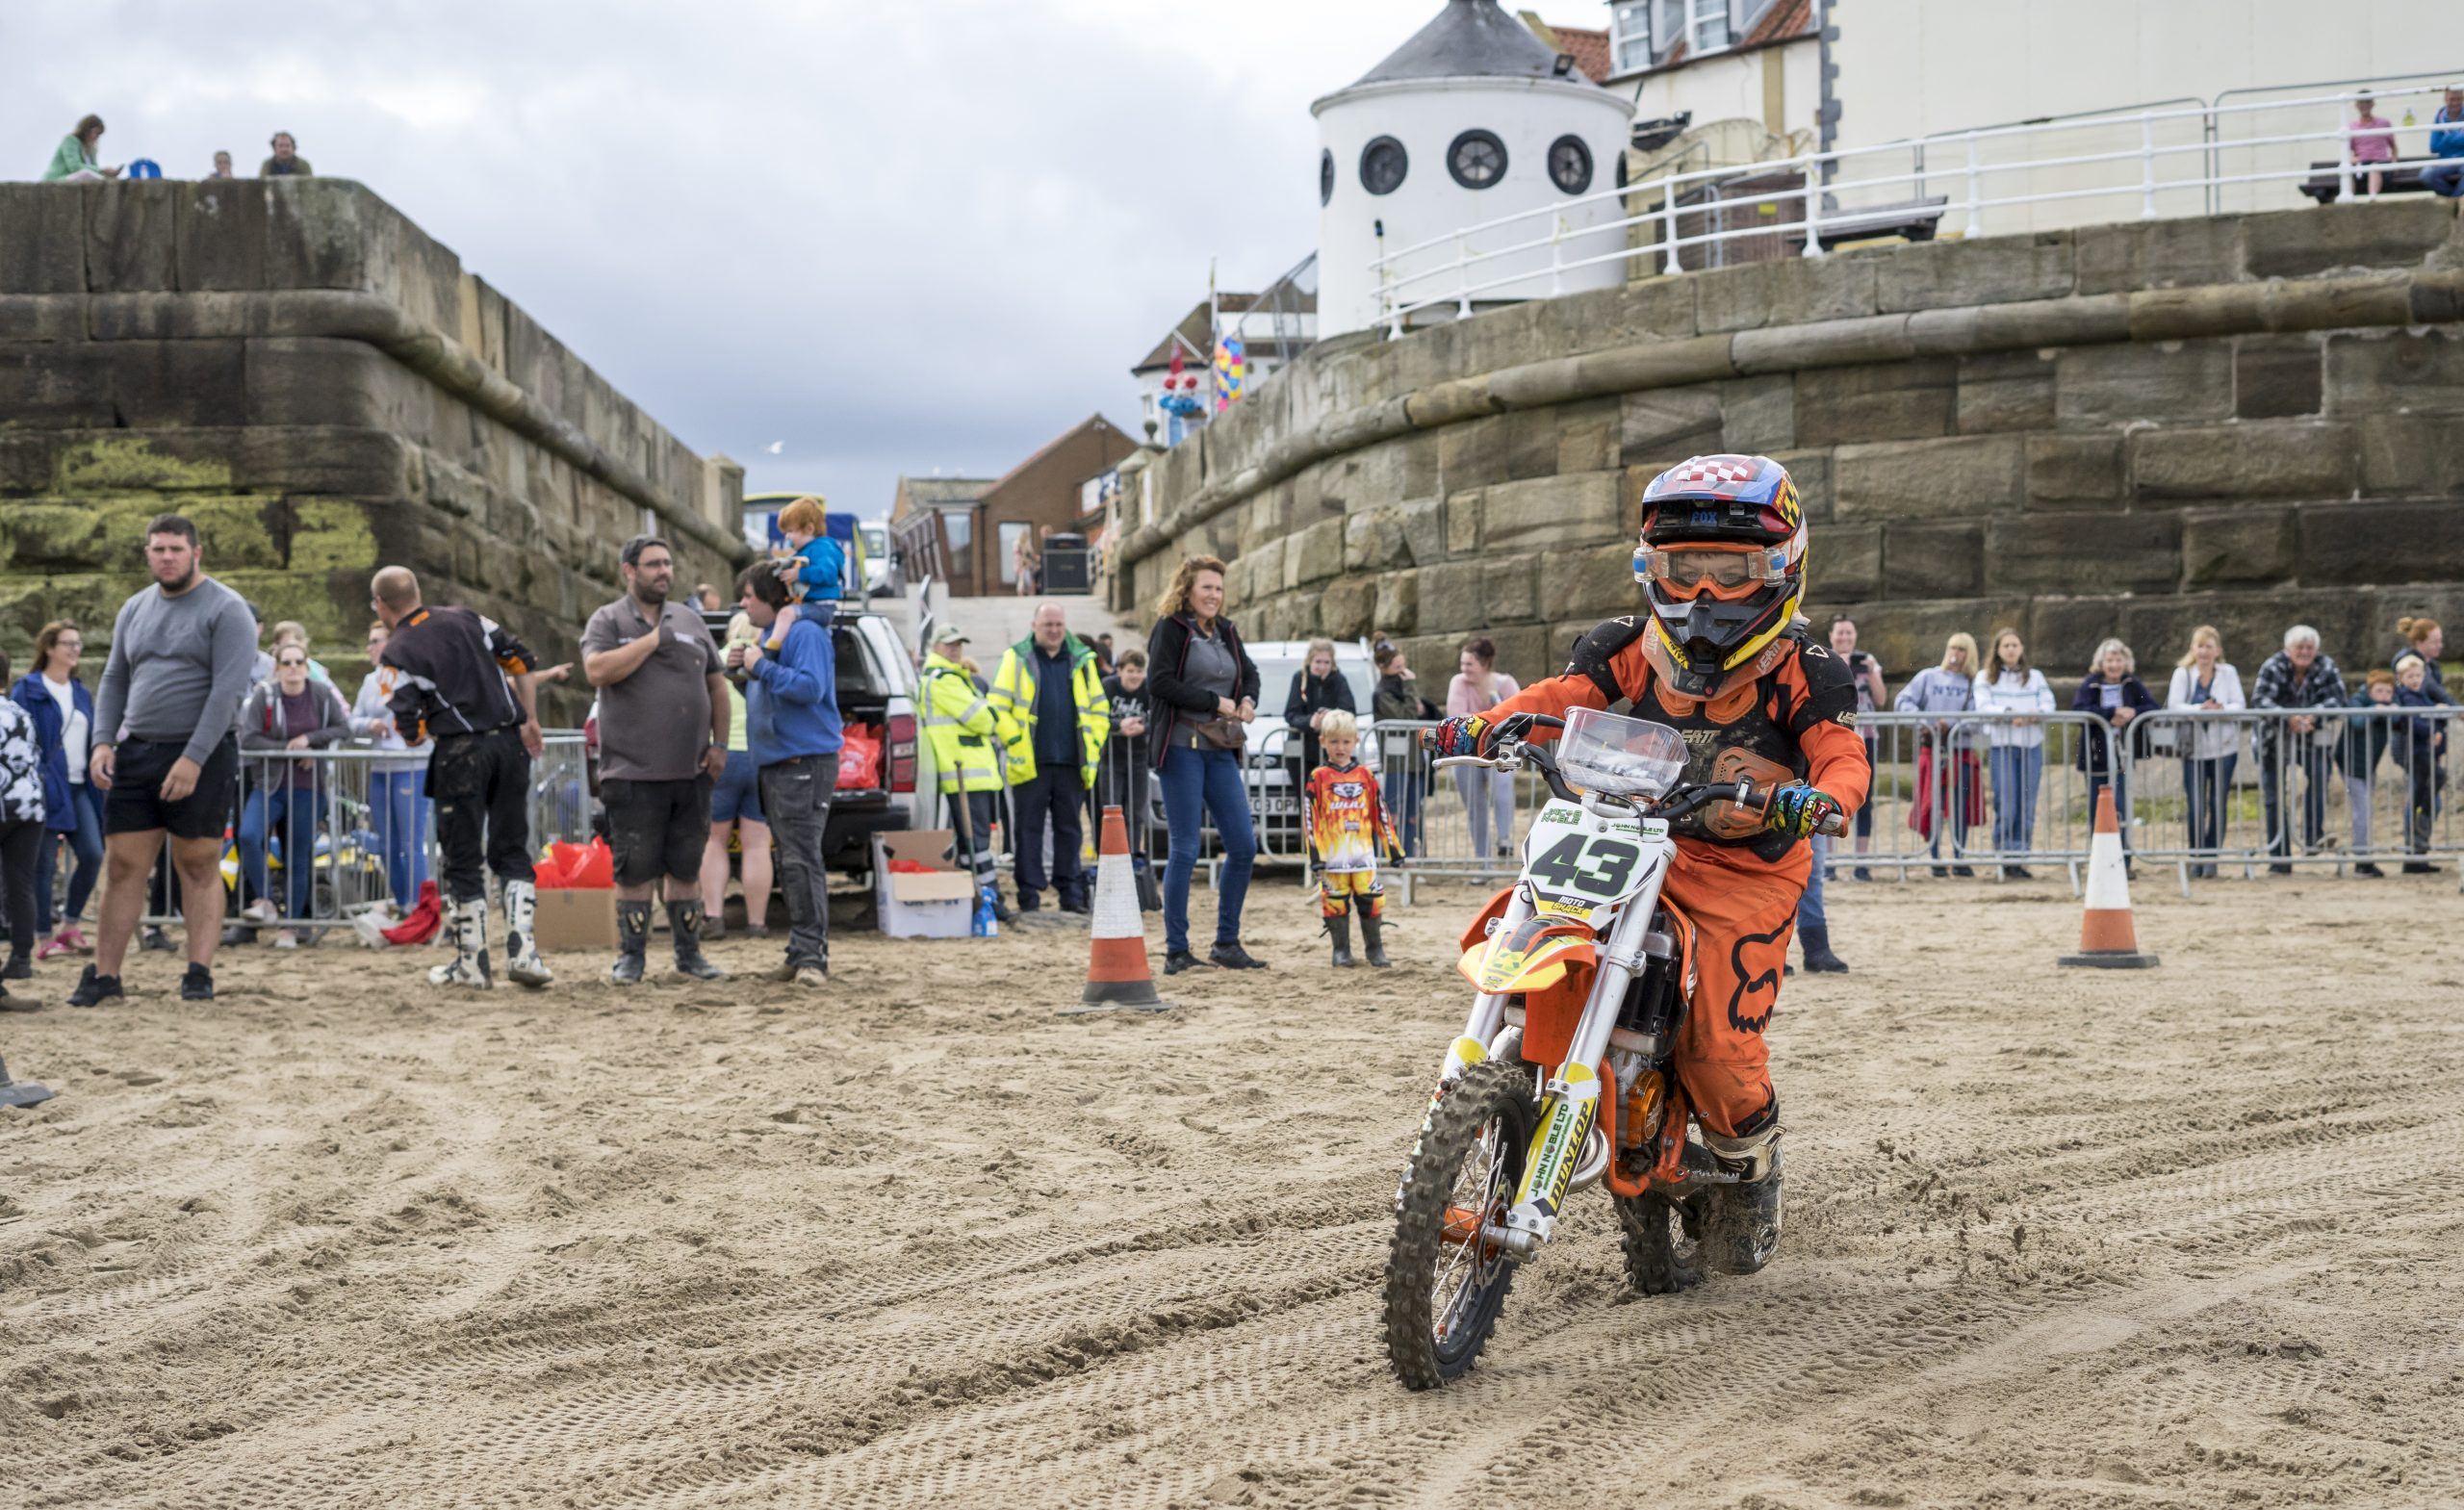 a motor bike racing on Whitby beach with a large crowd watching